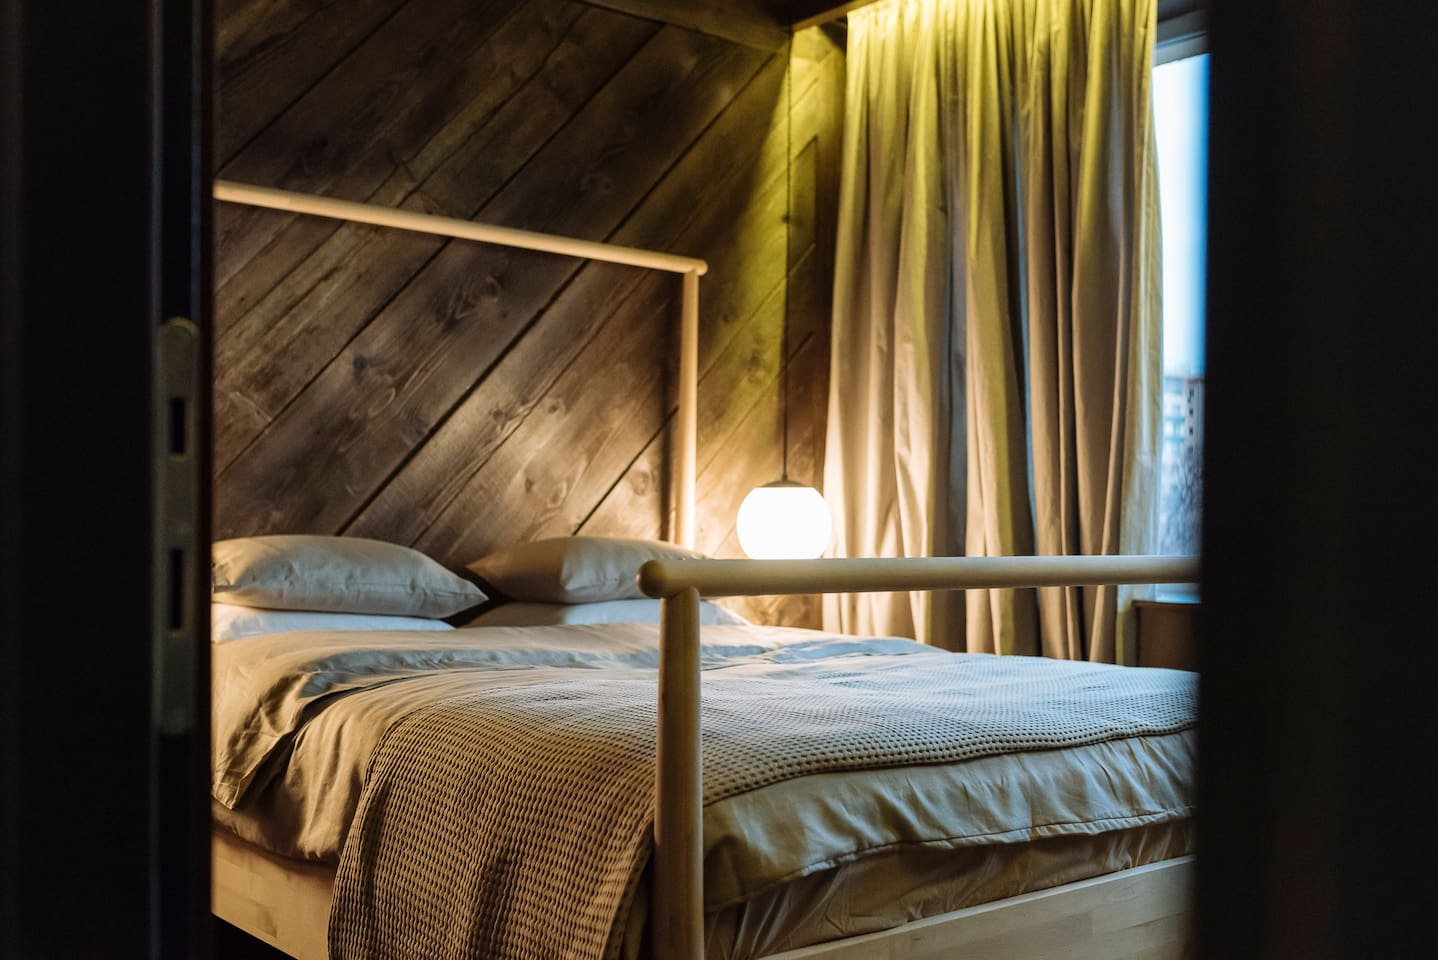 The wooden panels behind the bed give the room real warmth